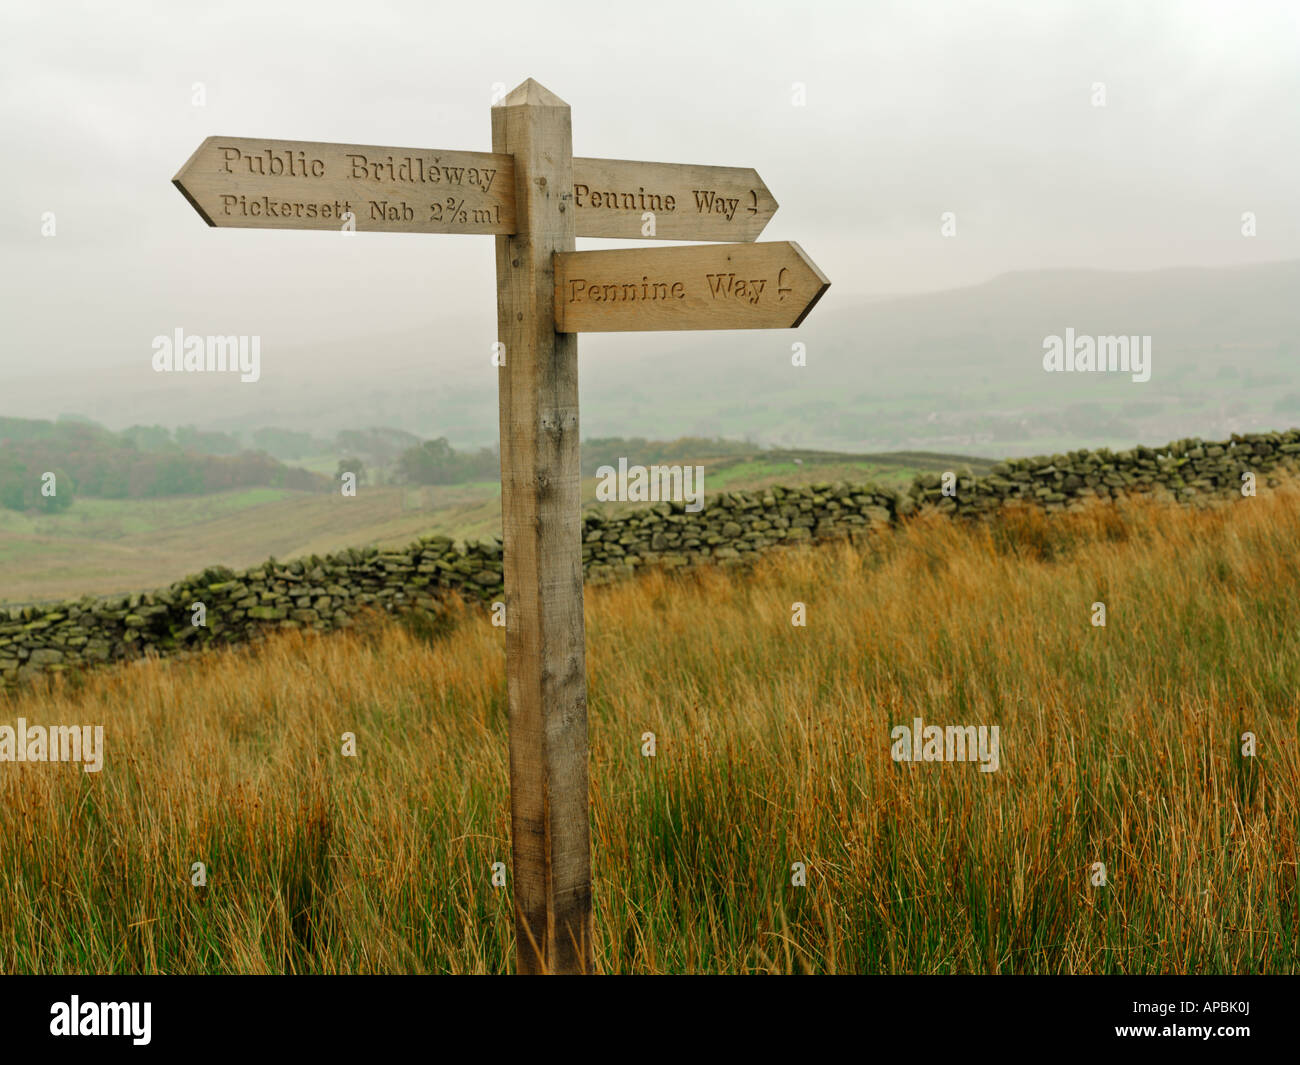 United Kingdom Yorkshire Yorkshire Dales National Park signage for the Pennine Way a 270 mile hiking path - Stock Image